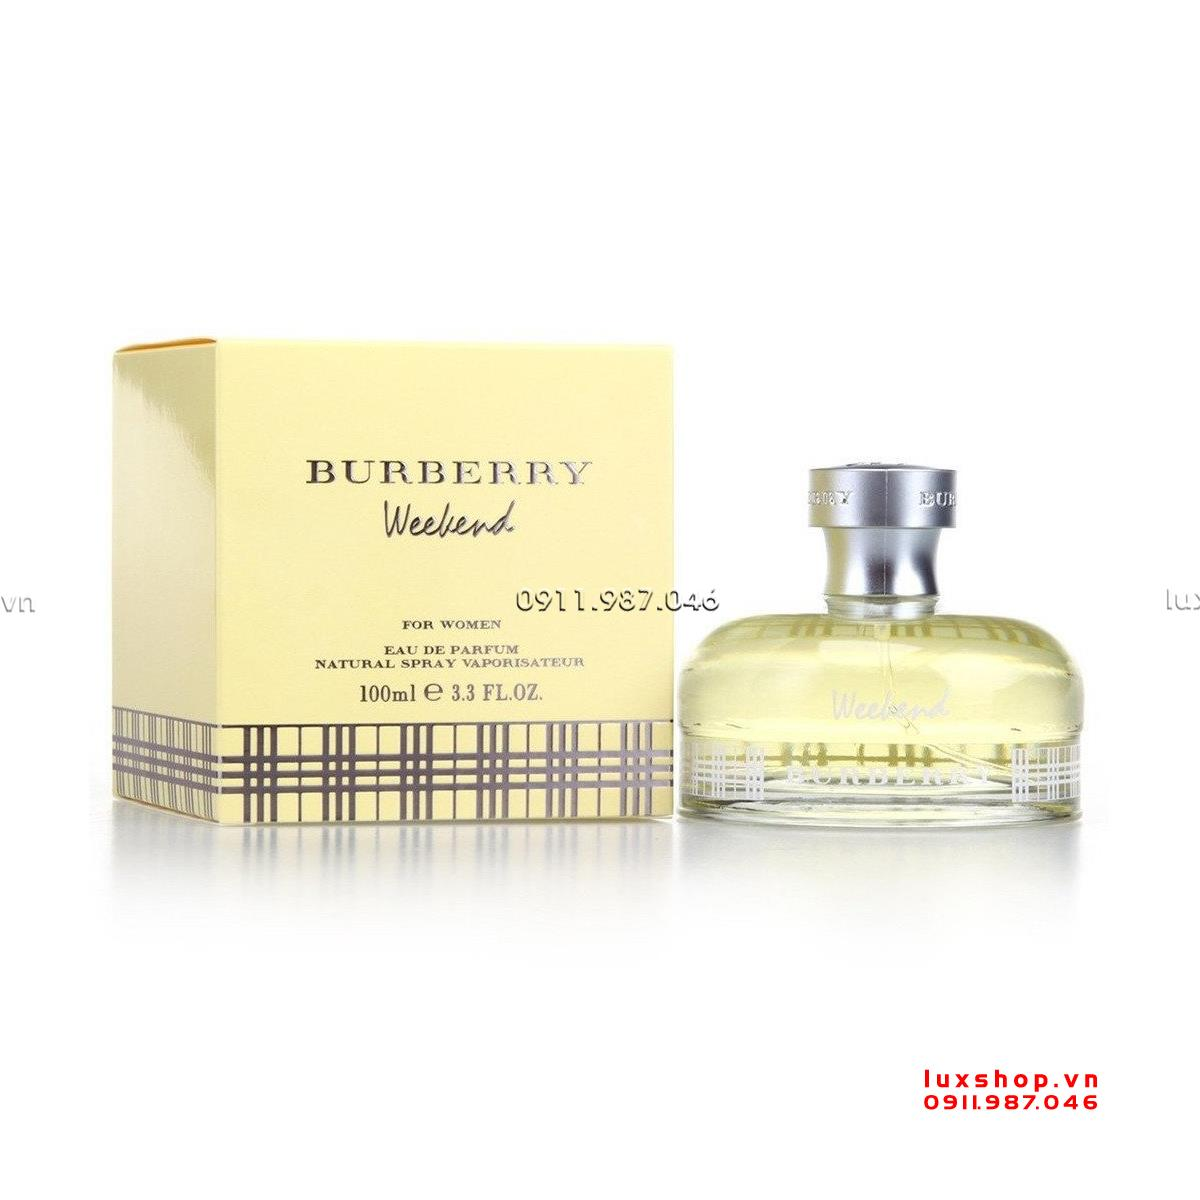 nuoc-hoa-nu-burberry-weekend-edp-100ml-chinh-hang-pn102036